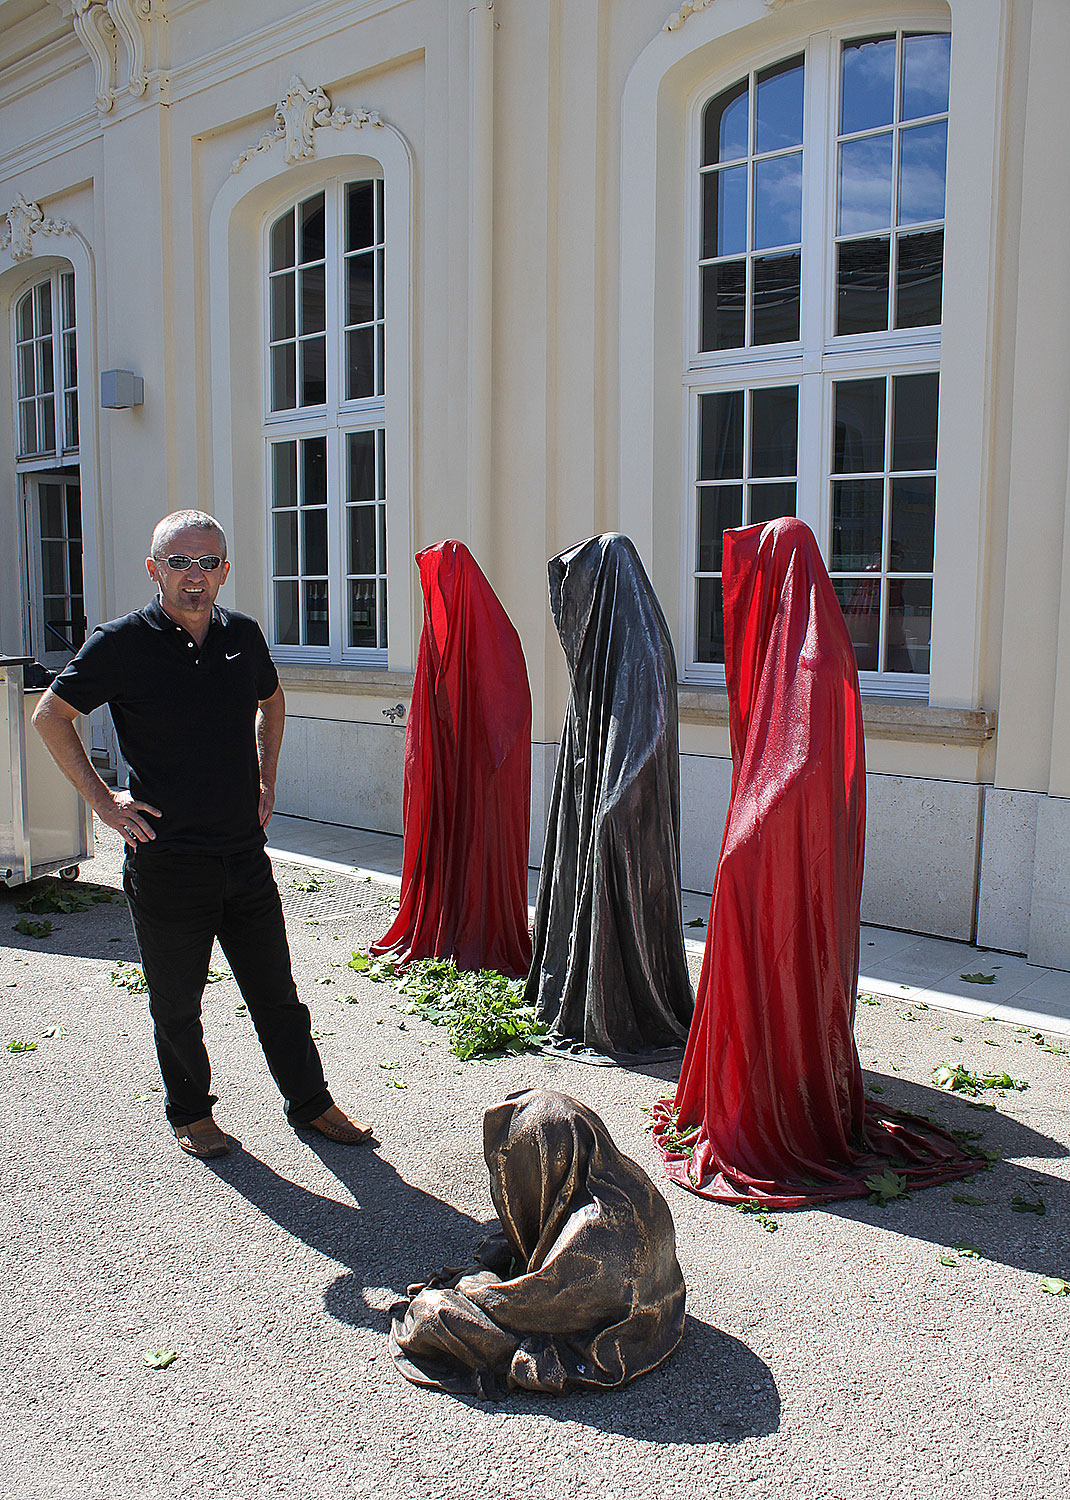 kunstmesse-schloss-laxenburg-galerie-szaal-sculpture-guardians-waechter-sculptor-manfred-kielnhofer-contemporary-fine-art-arts-antiques-design-0590